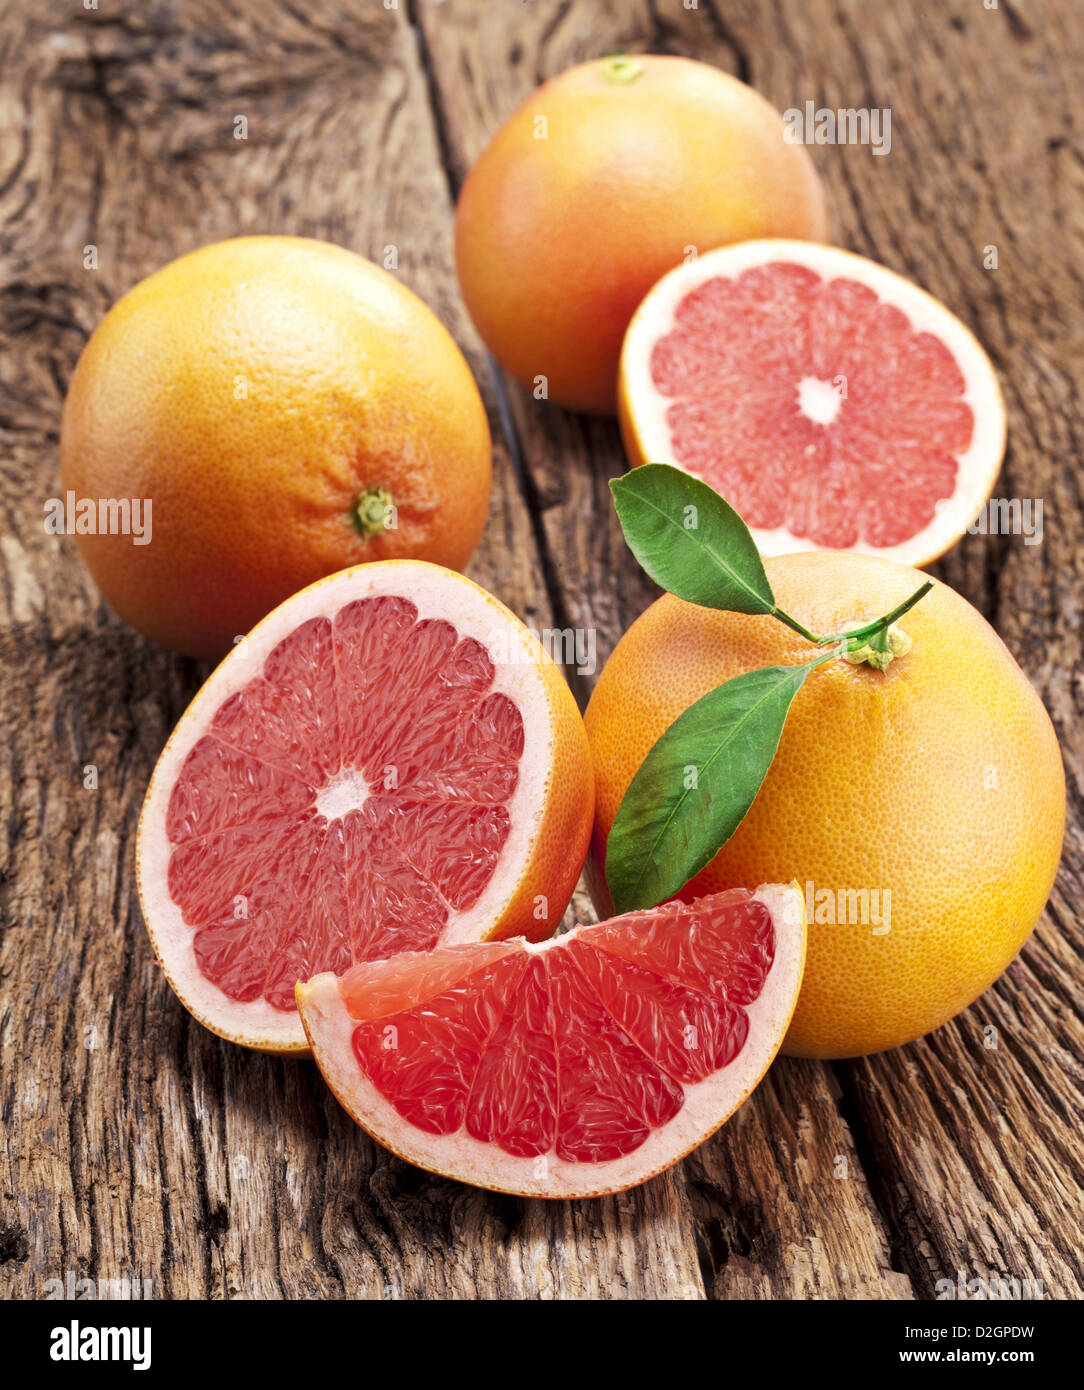 Grapefruit with slices on a wooden table. Stock Photo